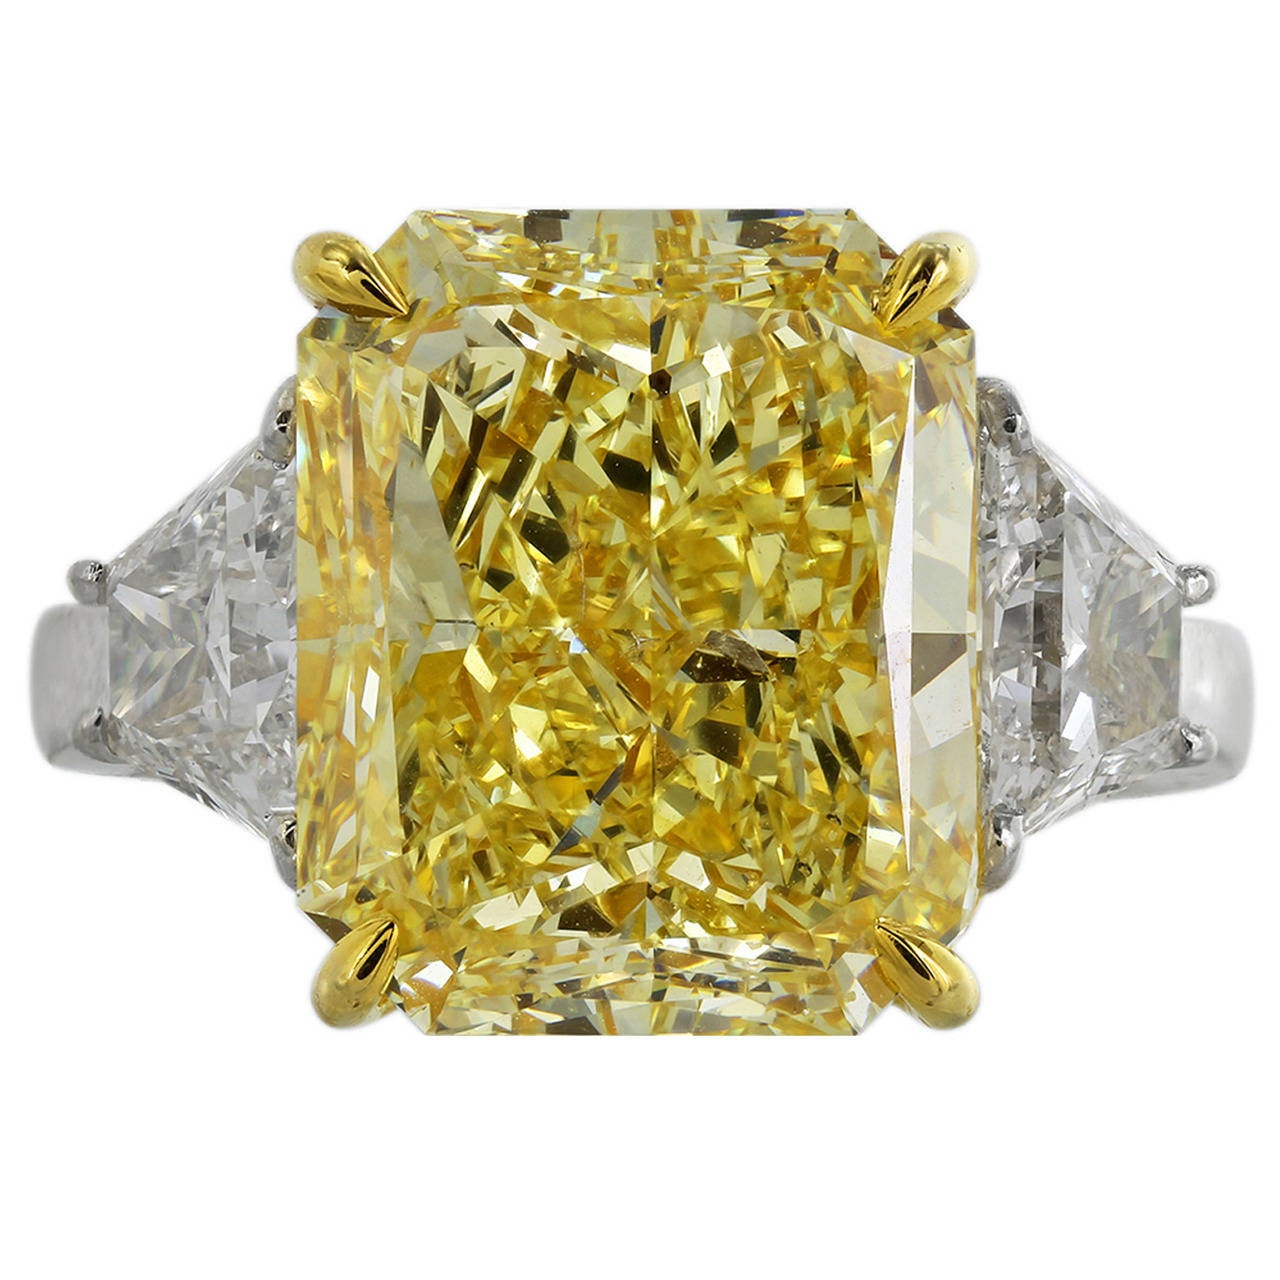 10 Carat Fancy Intense Yellow Diamond Gold Three Stone Engagement Ring at 1st